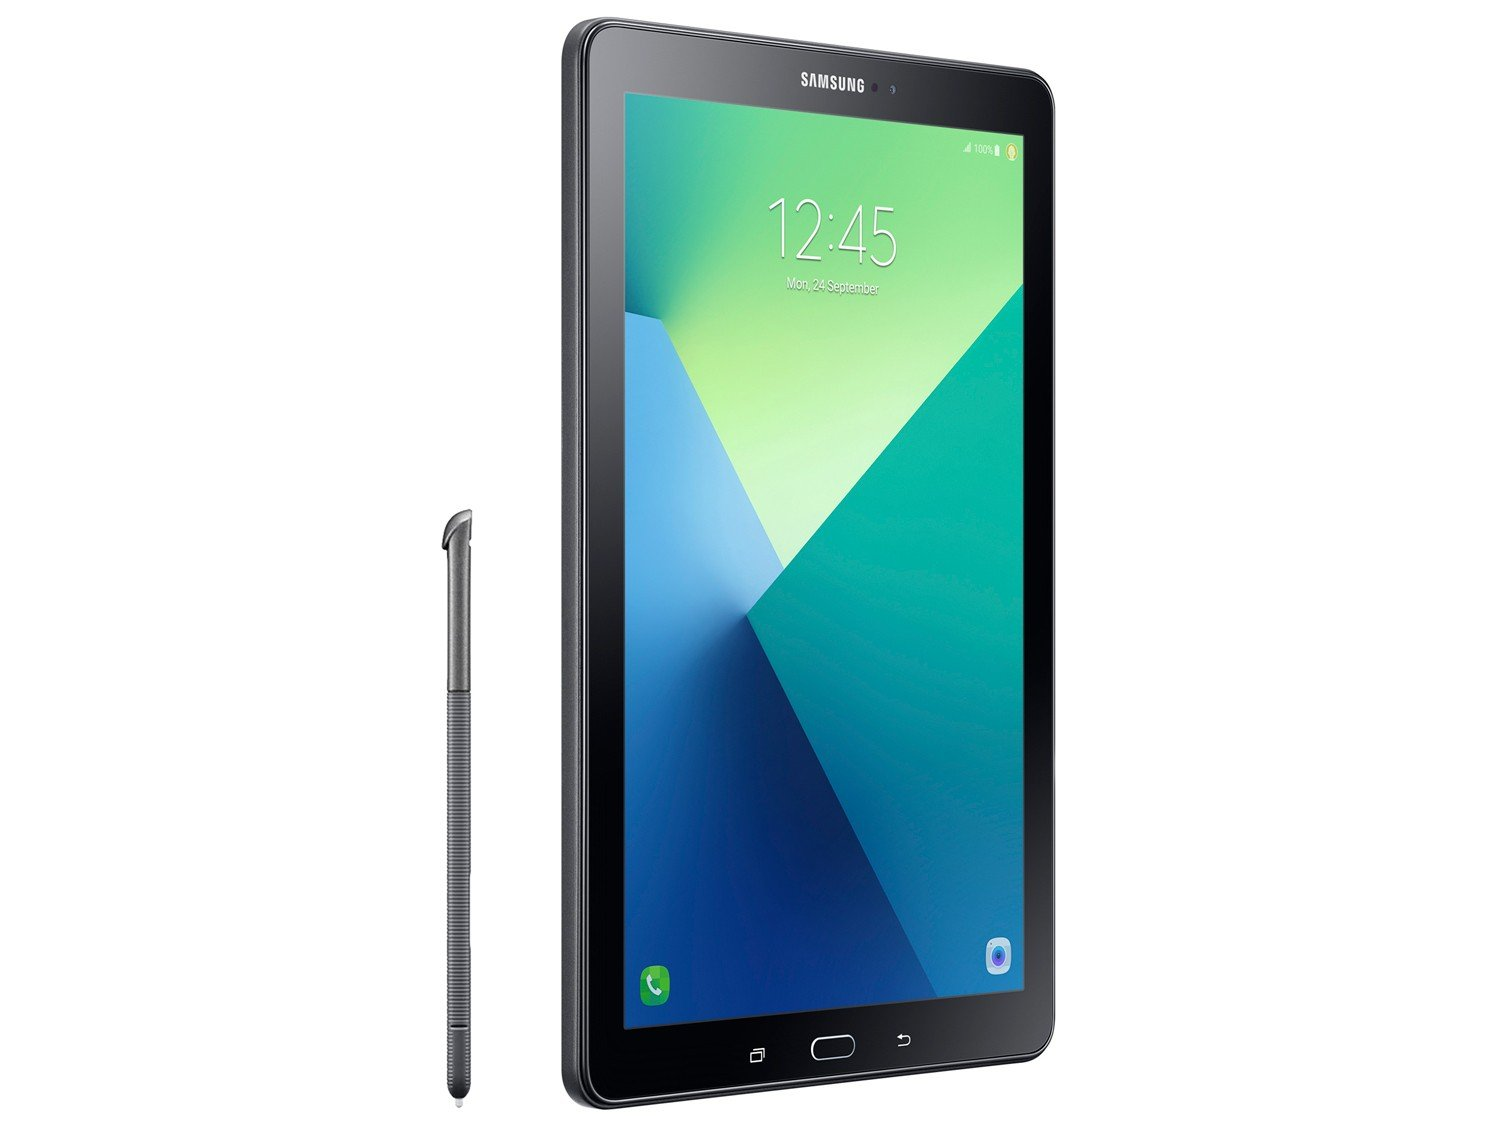 Foto 2 - Tablet Samsung Galaxy Tab A Note P585 16GB 10,1 - 4G Wi-Fi Android 7 Proc. Octa Core Câm 8MP